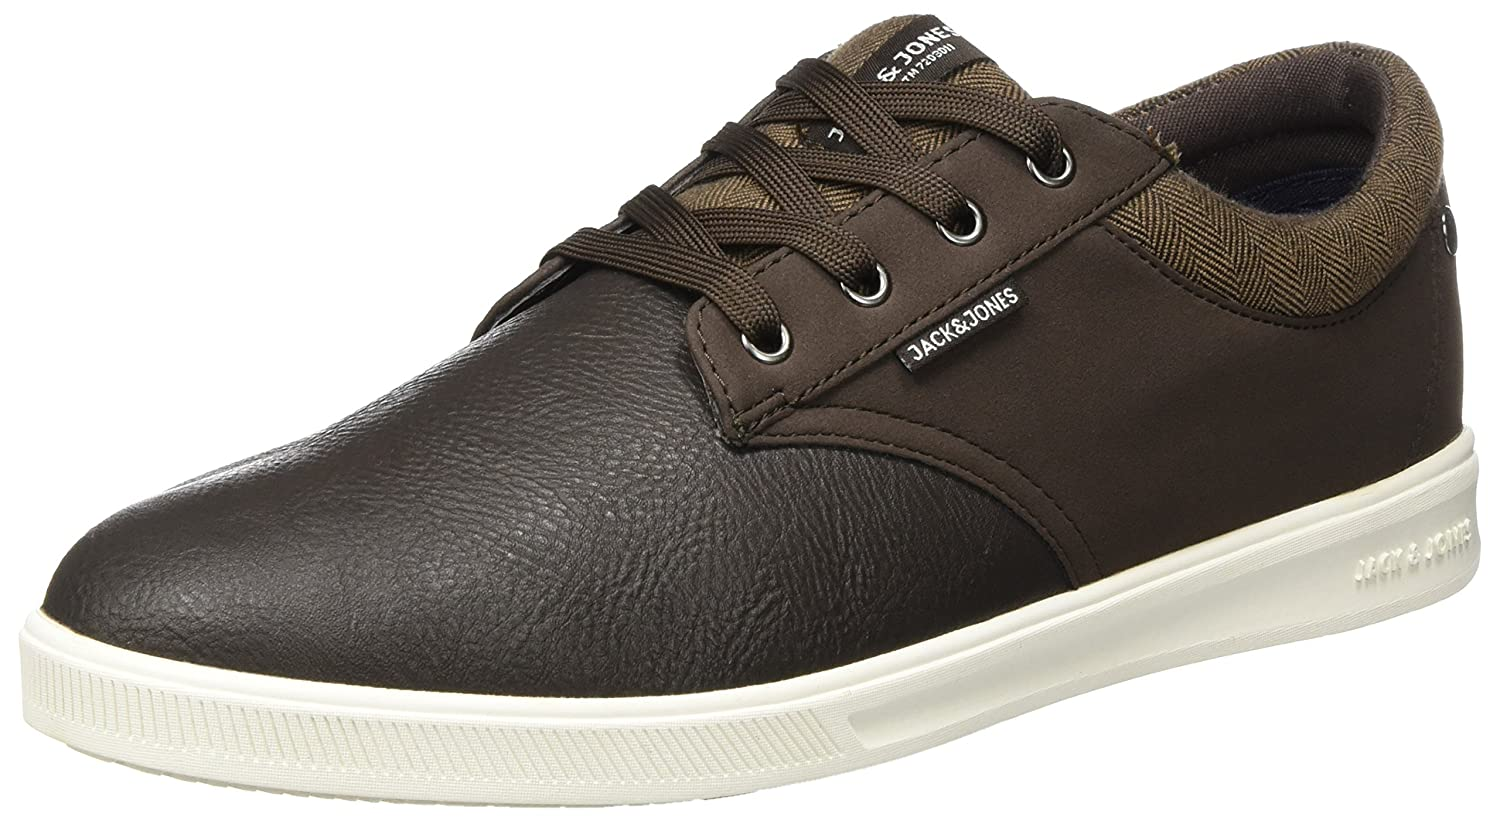 TALLA 40 EU. Jack & Jones Jfwgaston PU Mix Java, Zapatillas para Hombre